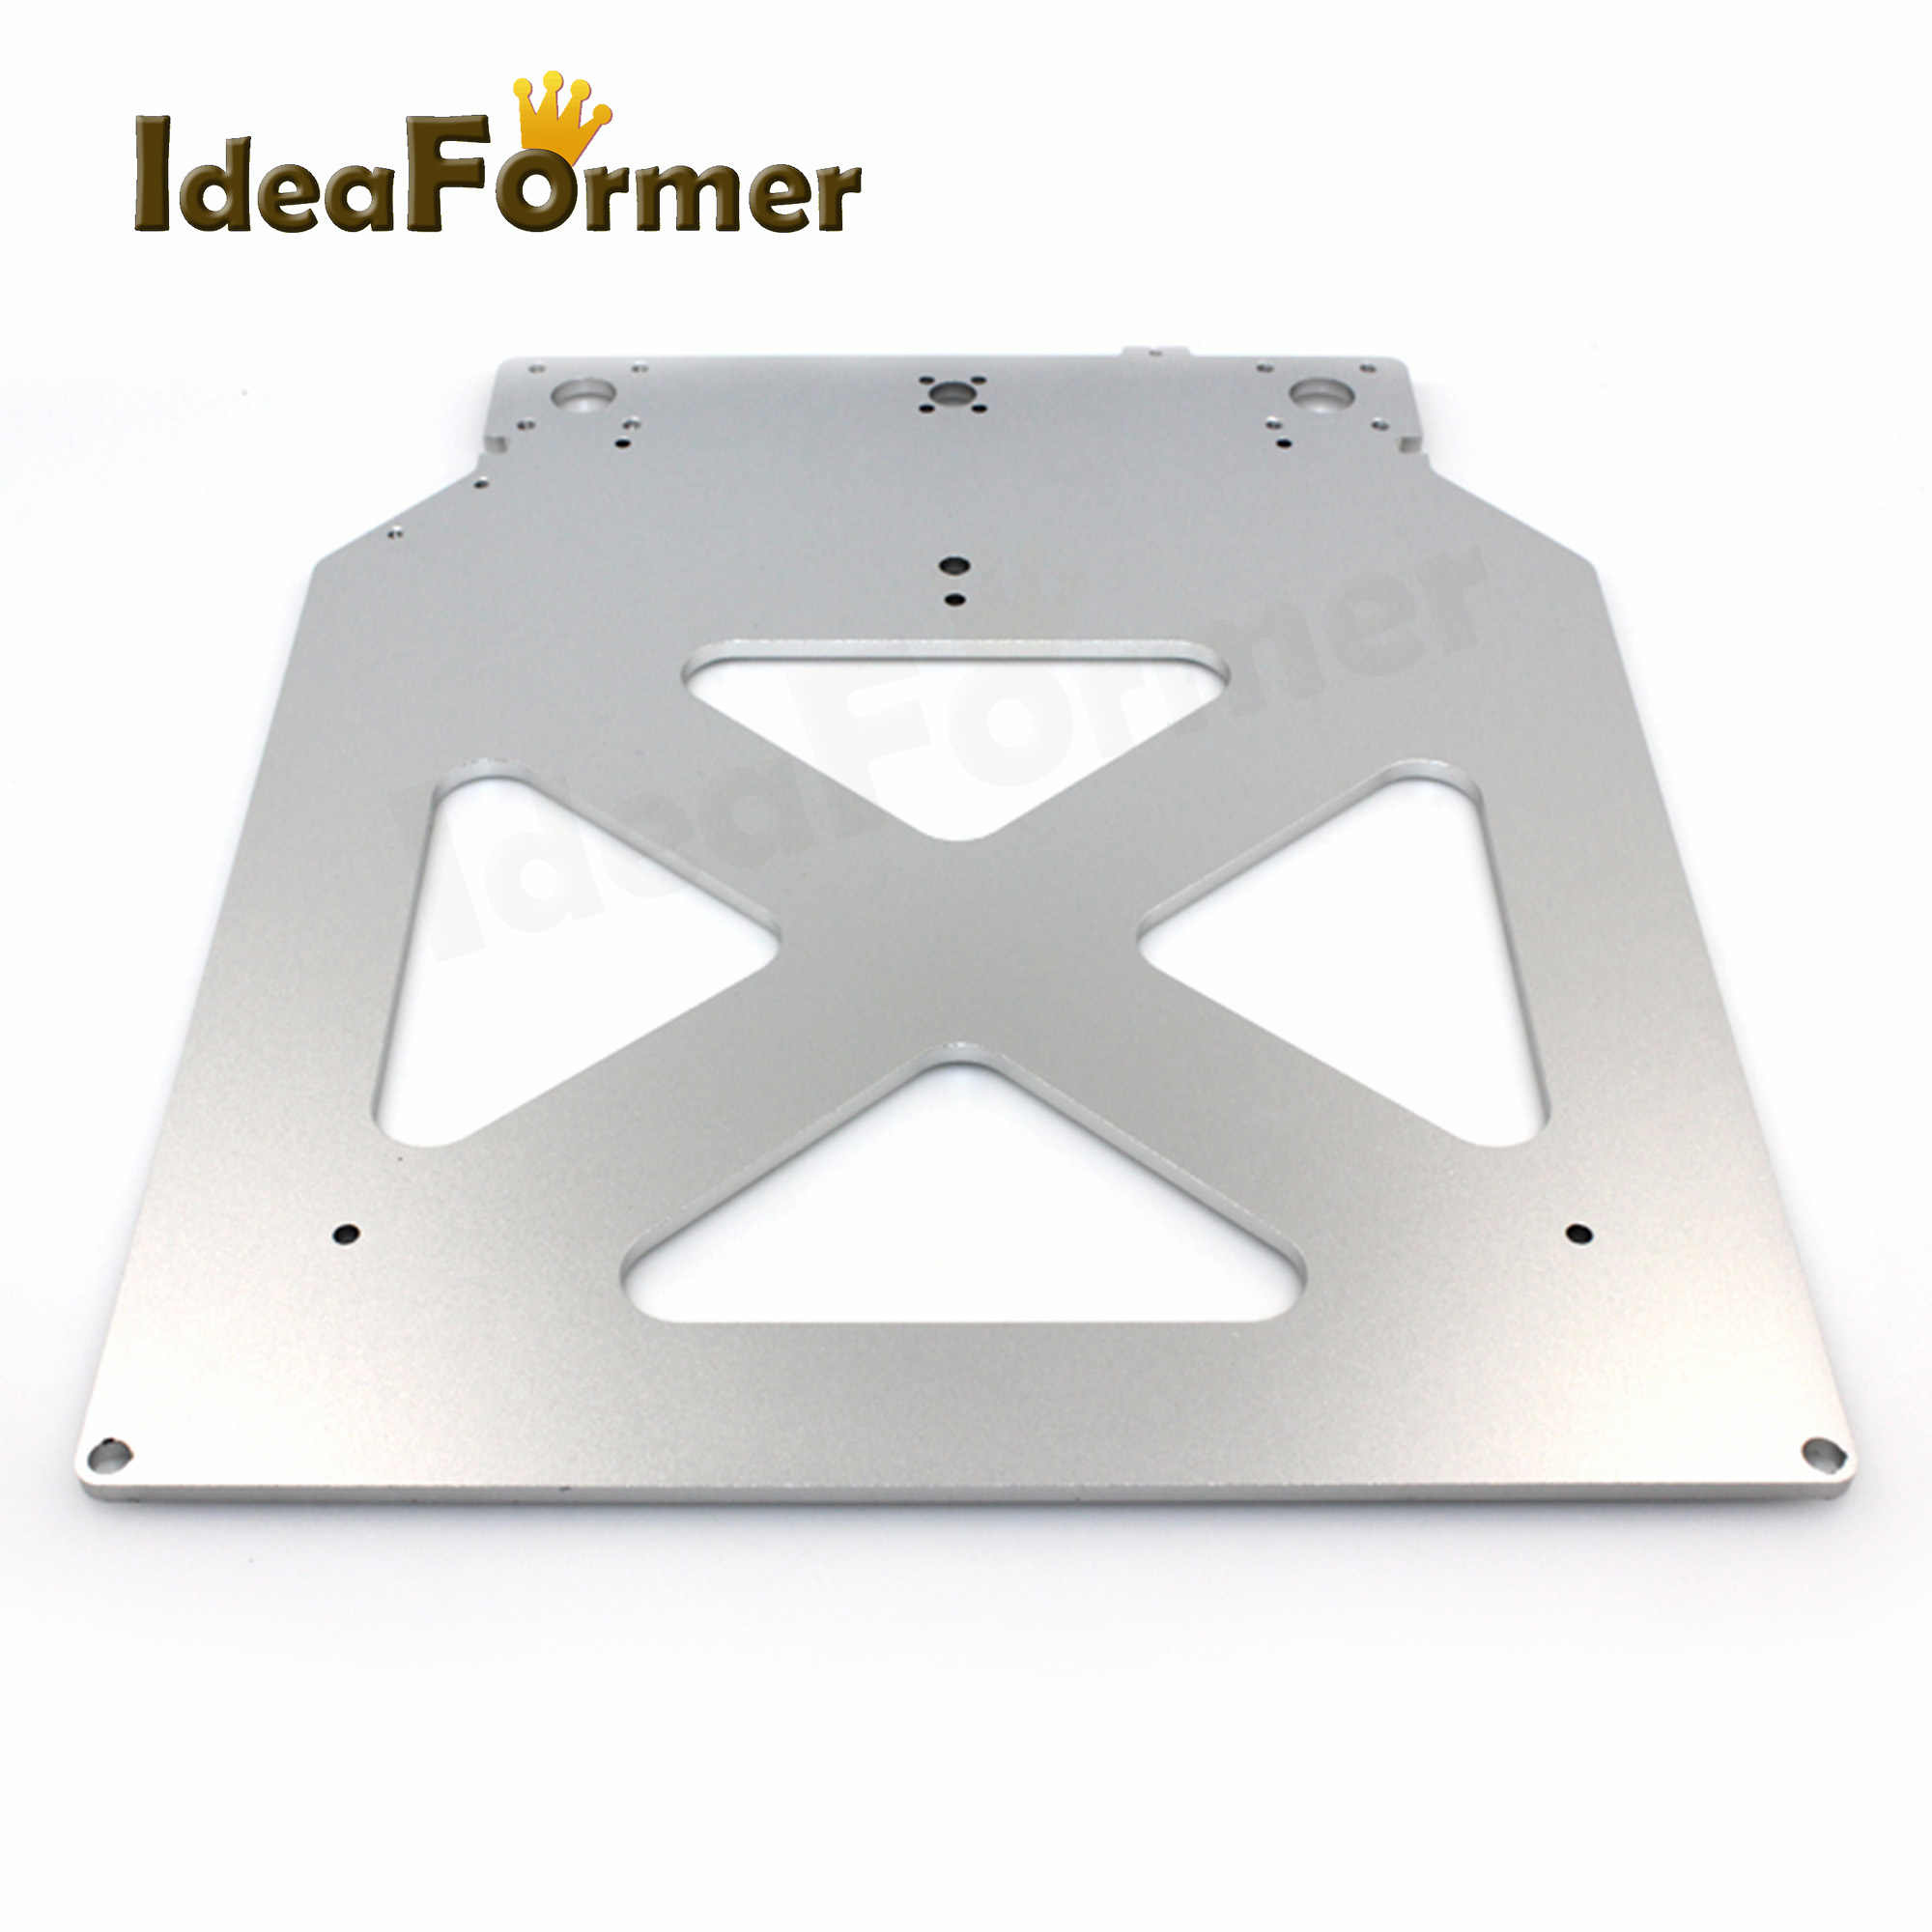 3D Printer Parts UM2 Z Table Base Plate Platform Bracket Supporting (with 4 Triangle Holes Inside) Heating Bed Aluminum Plate.